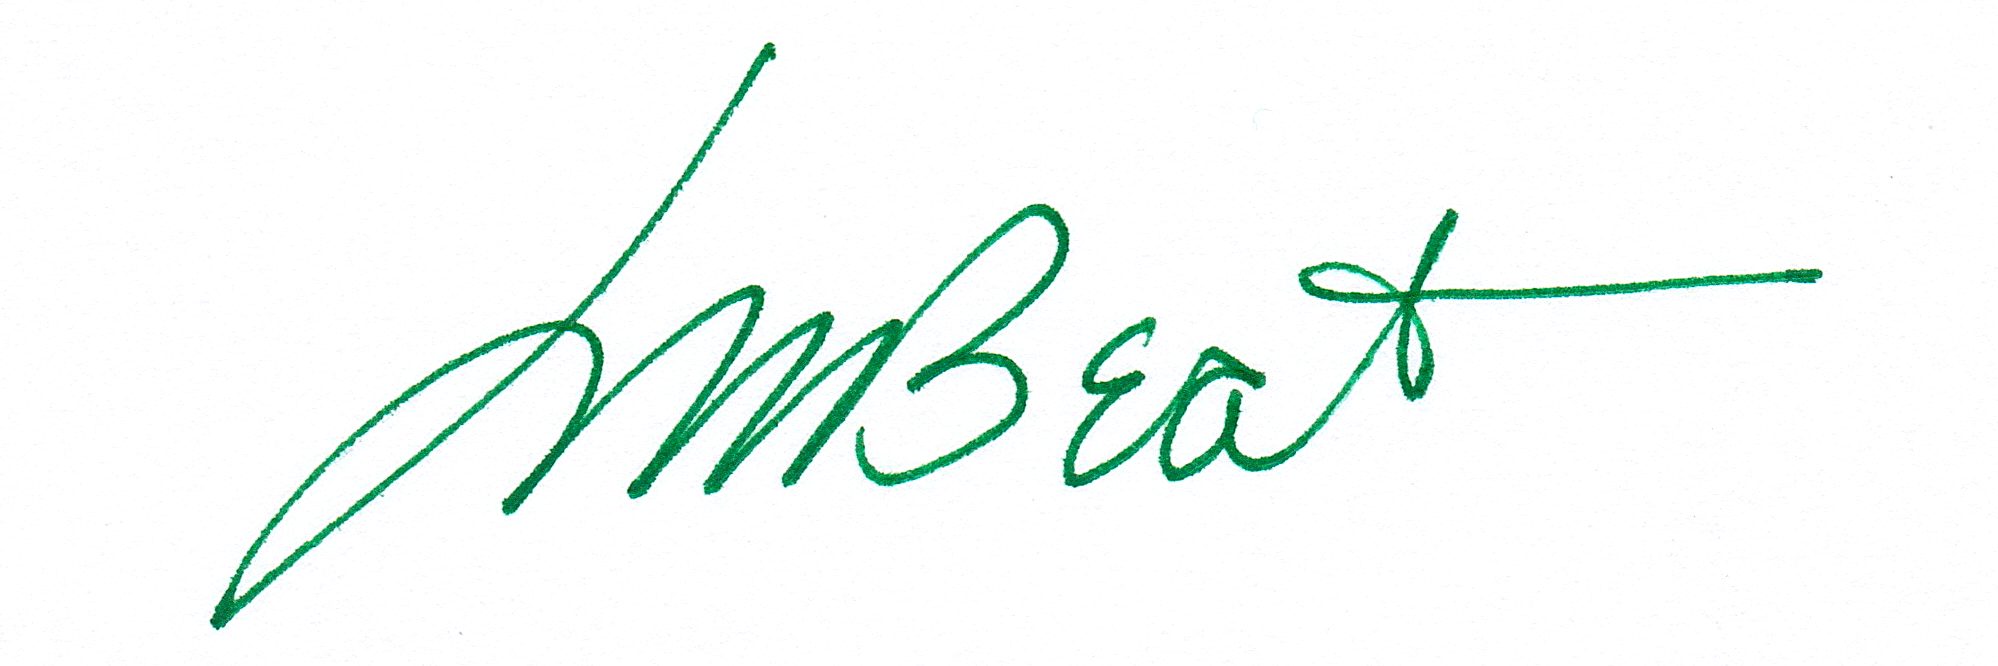 Larry Beat's Signature